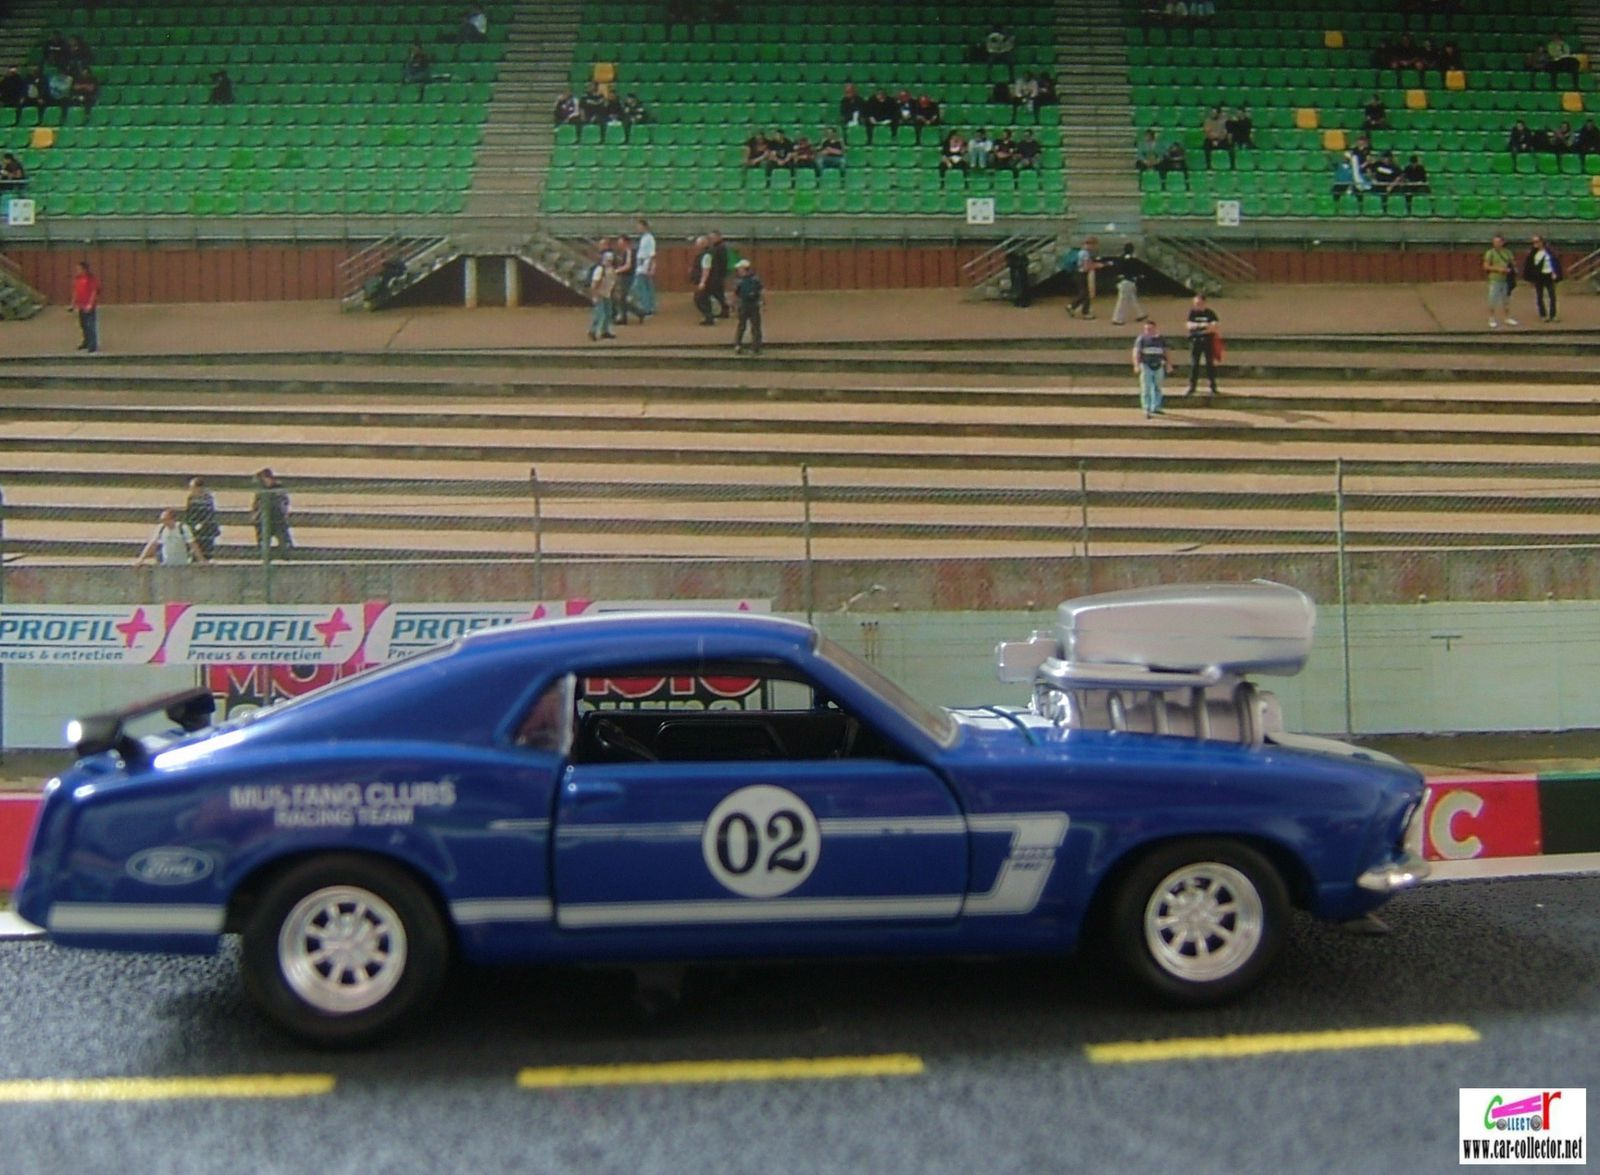 FORD MUSTANG RACER 302 1969 DICKIE 1/38